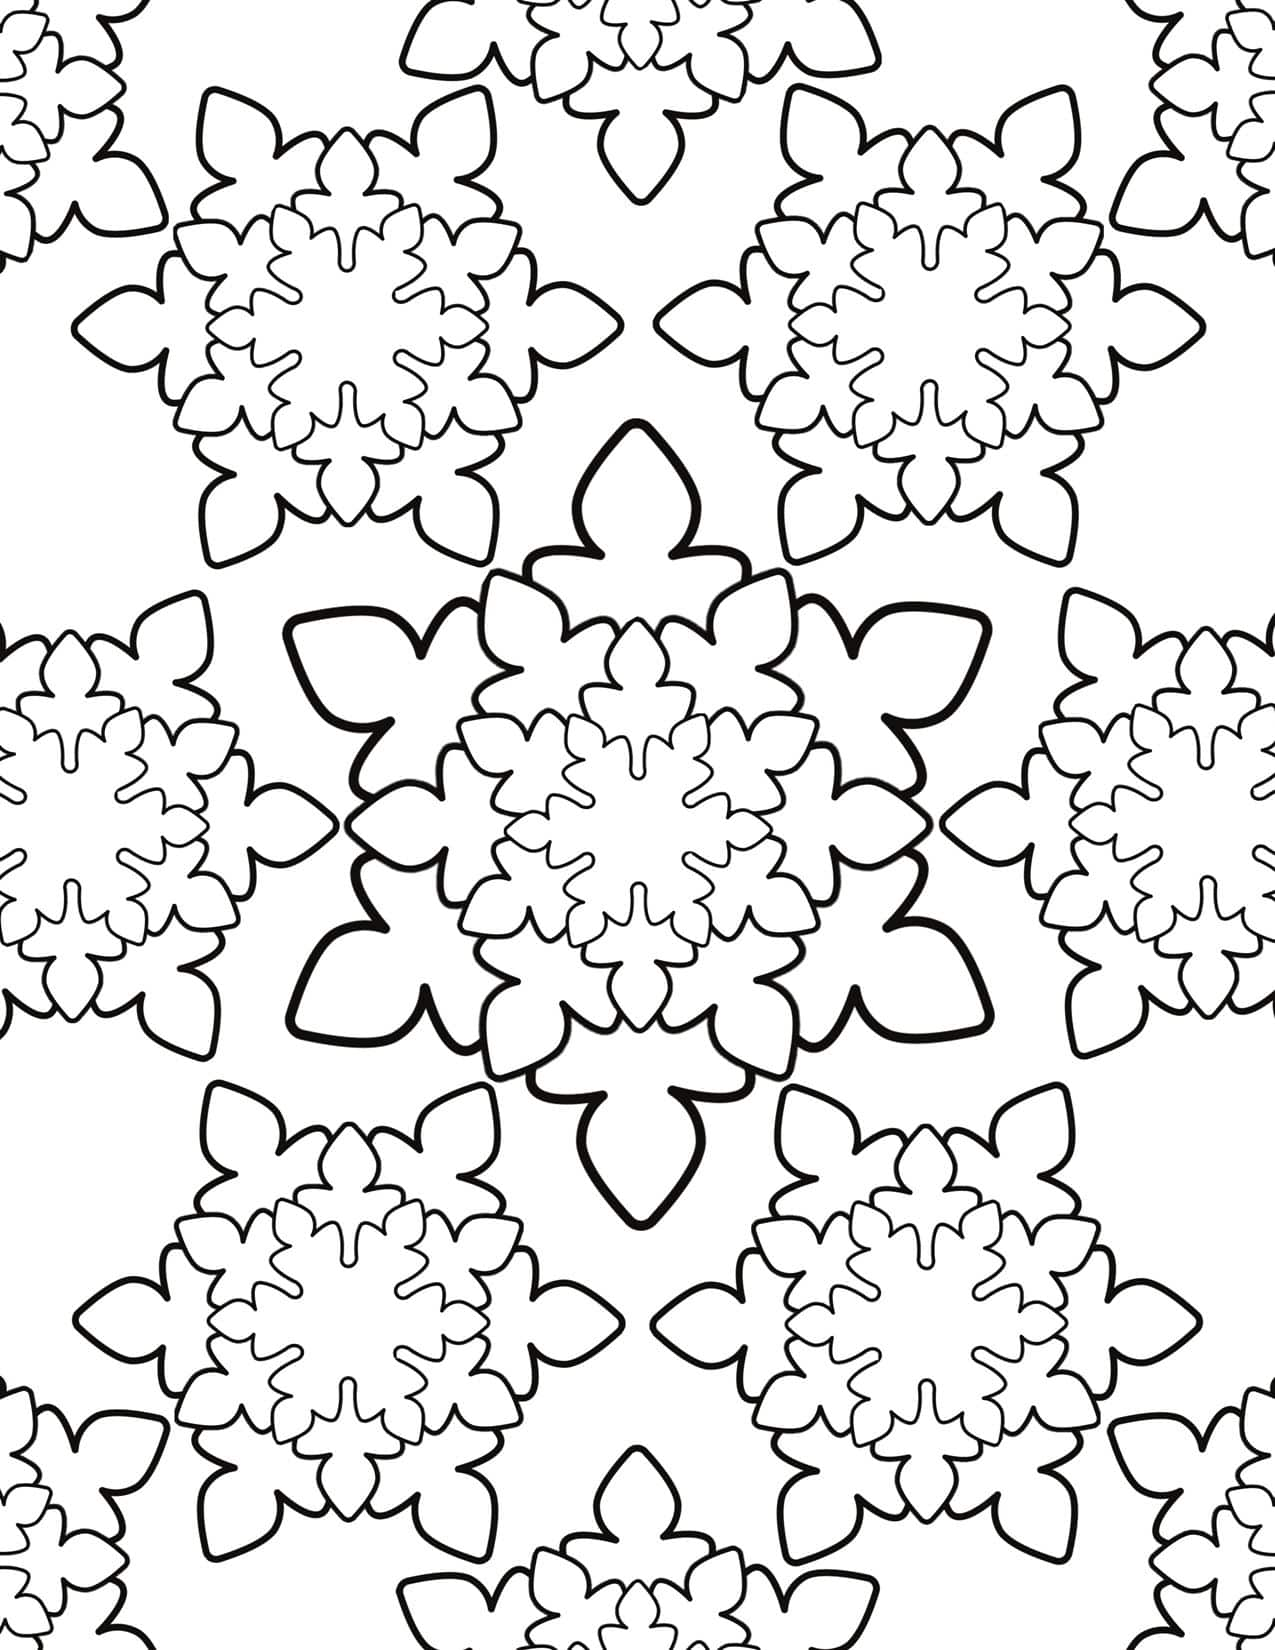 Adult Coloring Page - Snowflakes | Planerium